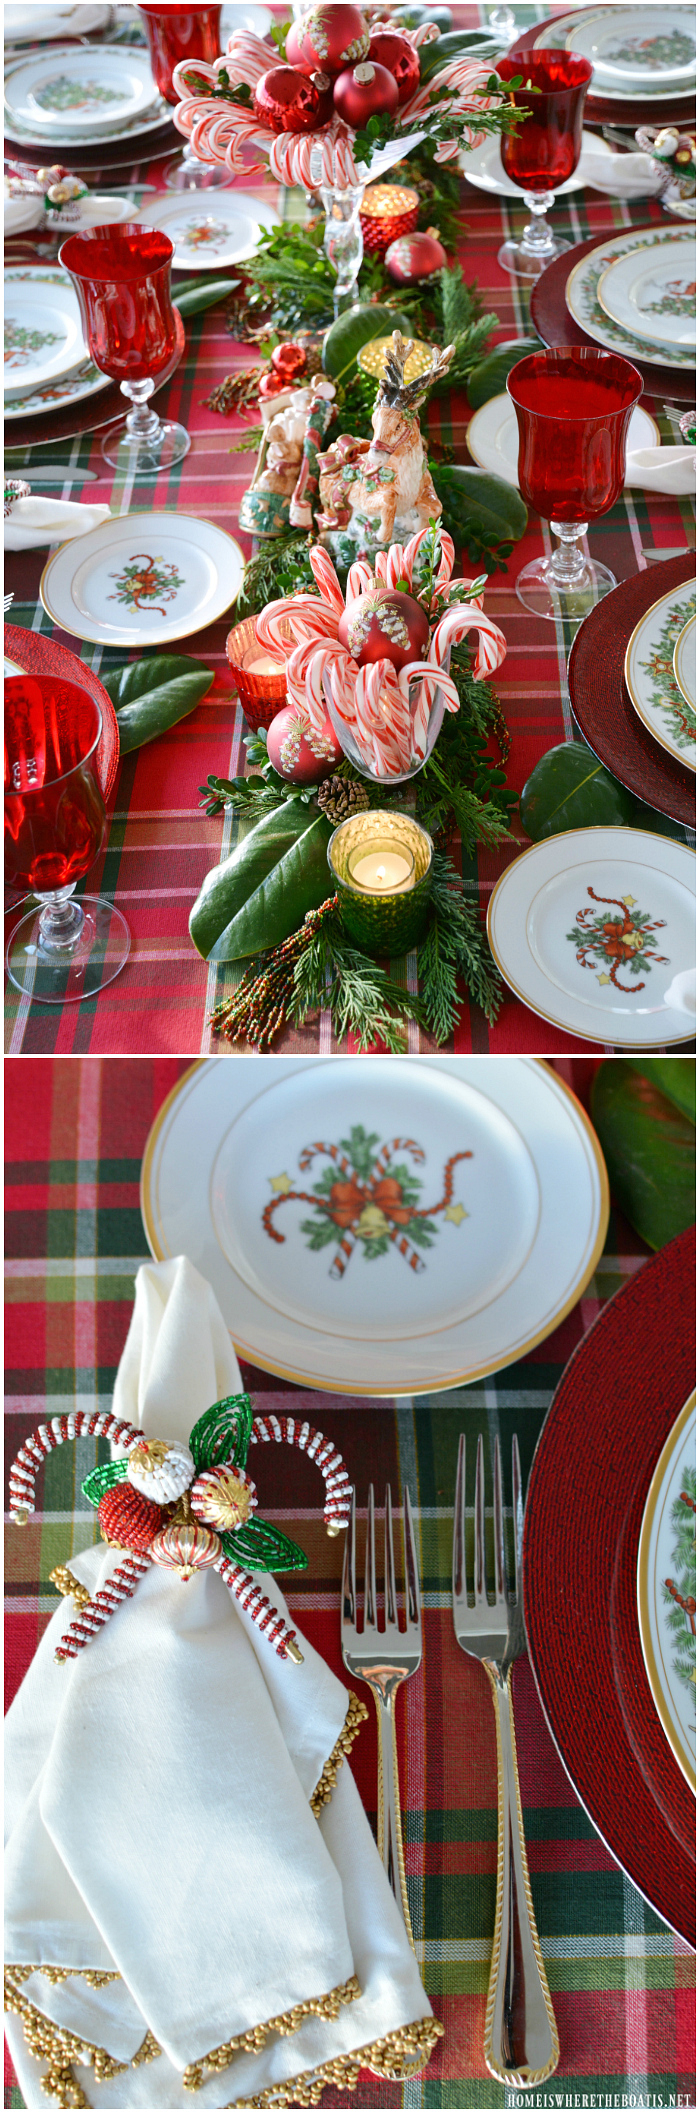 A Visit From St. Nicholas Christmas Tablescape | ©homeiswheretheboatis.net #Christmas #tablescapes #tablesetting #candycanes #redandgreen #reindeer #plaid